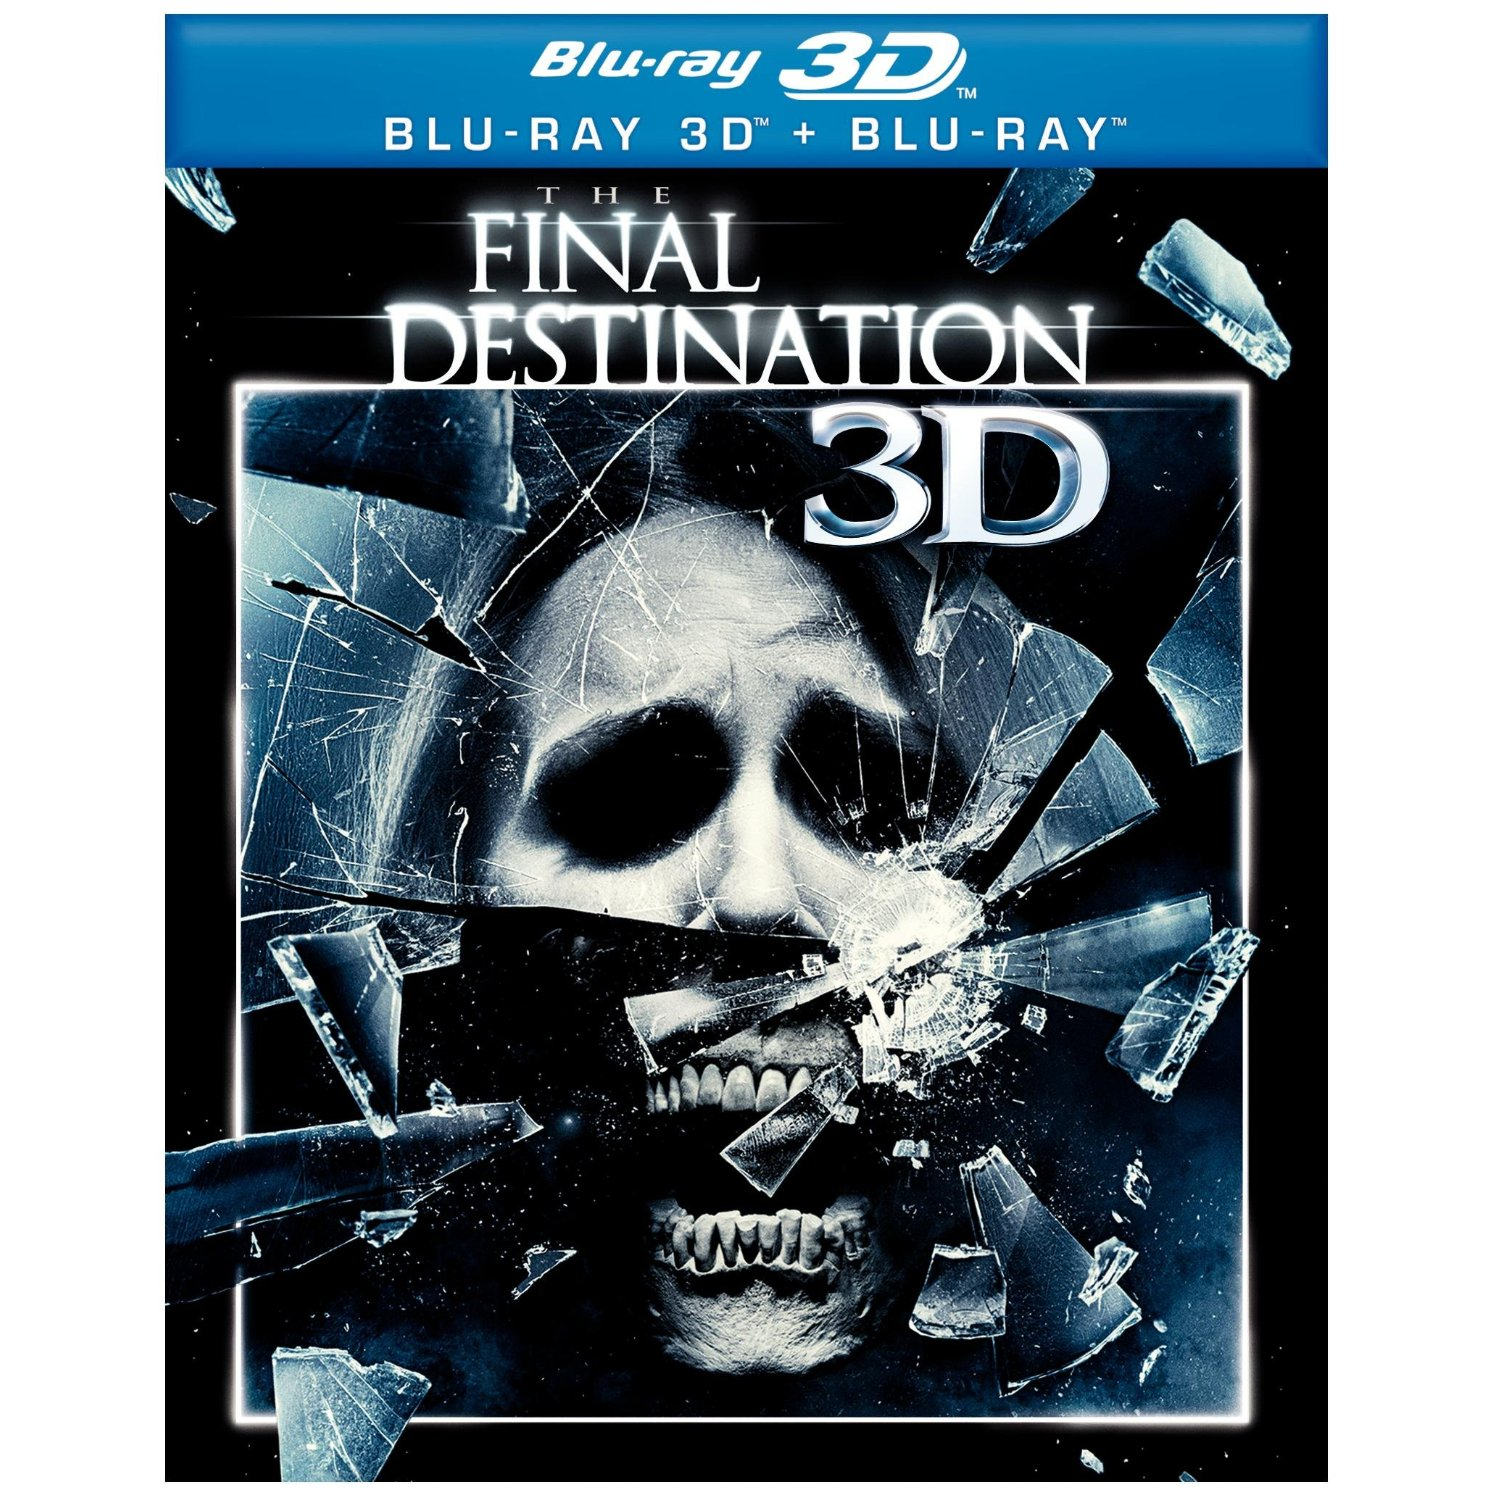 Final Destination 3D Bluray